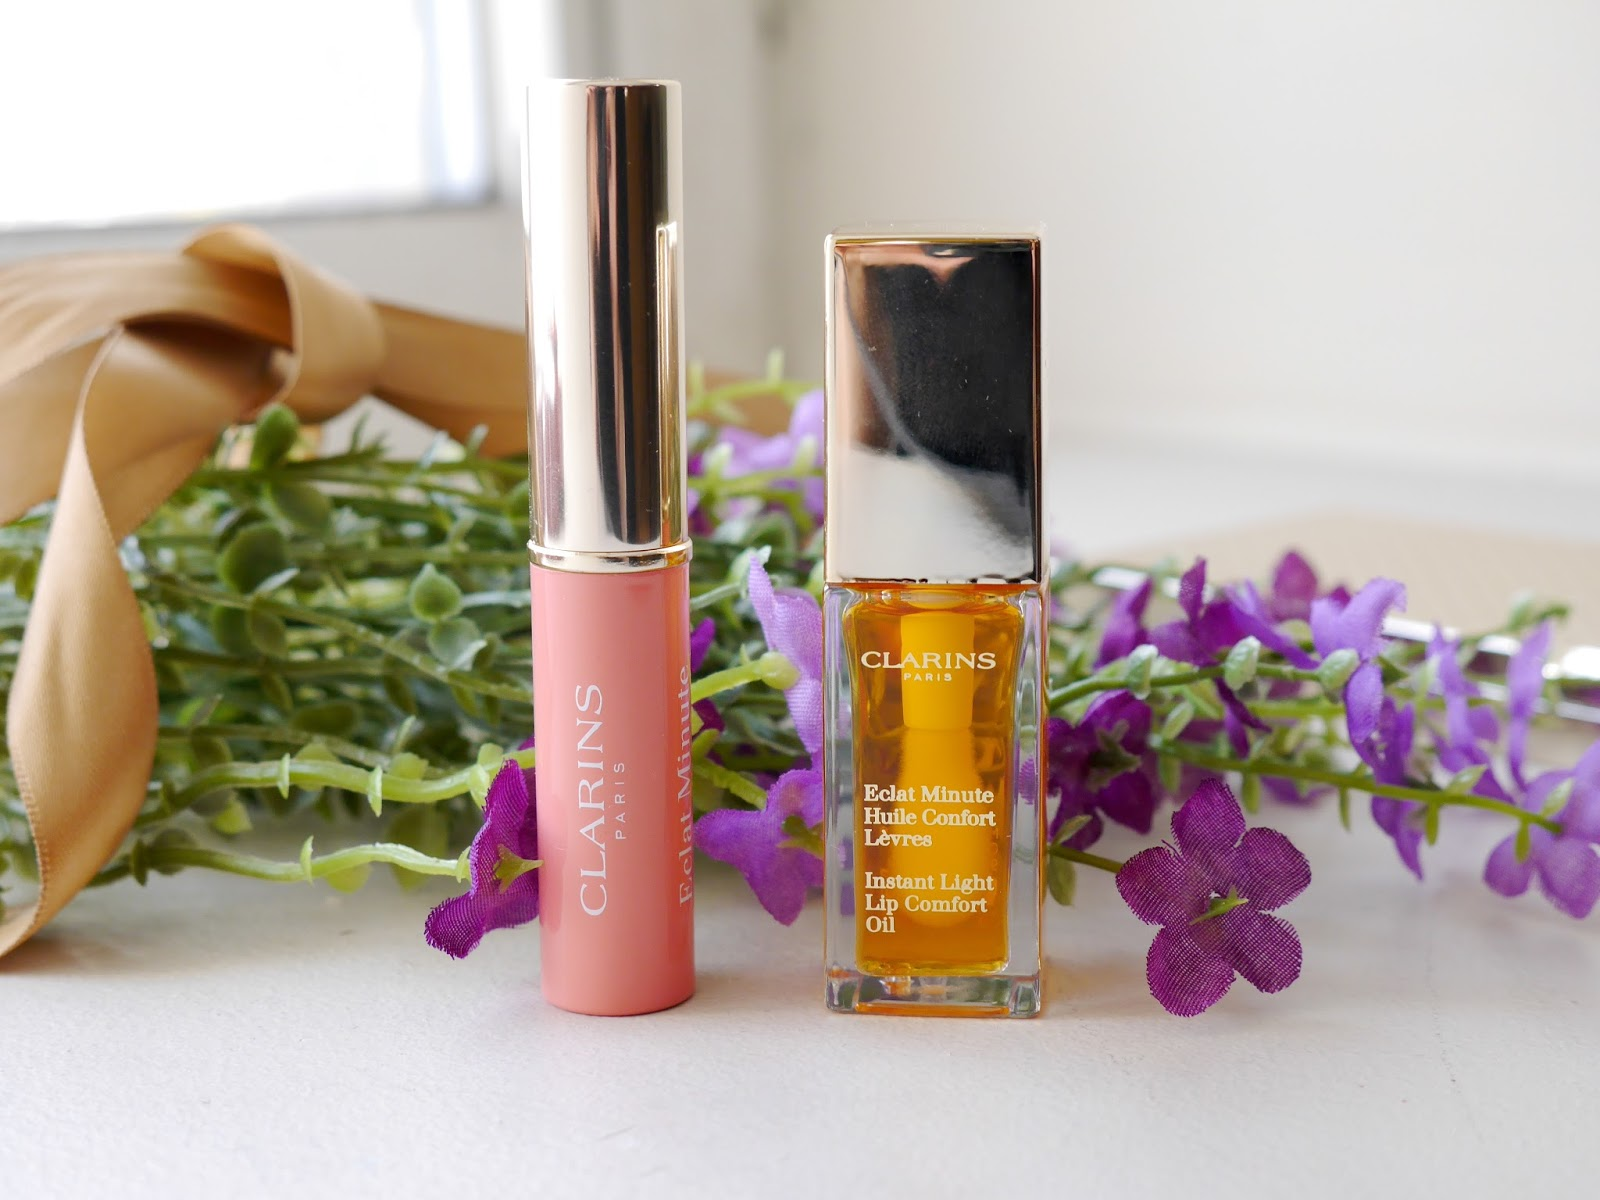 Clarins Lip Comfort Oil And Instant Light Lip Balm